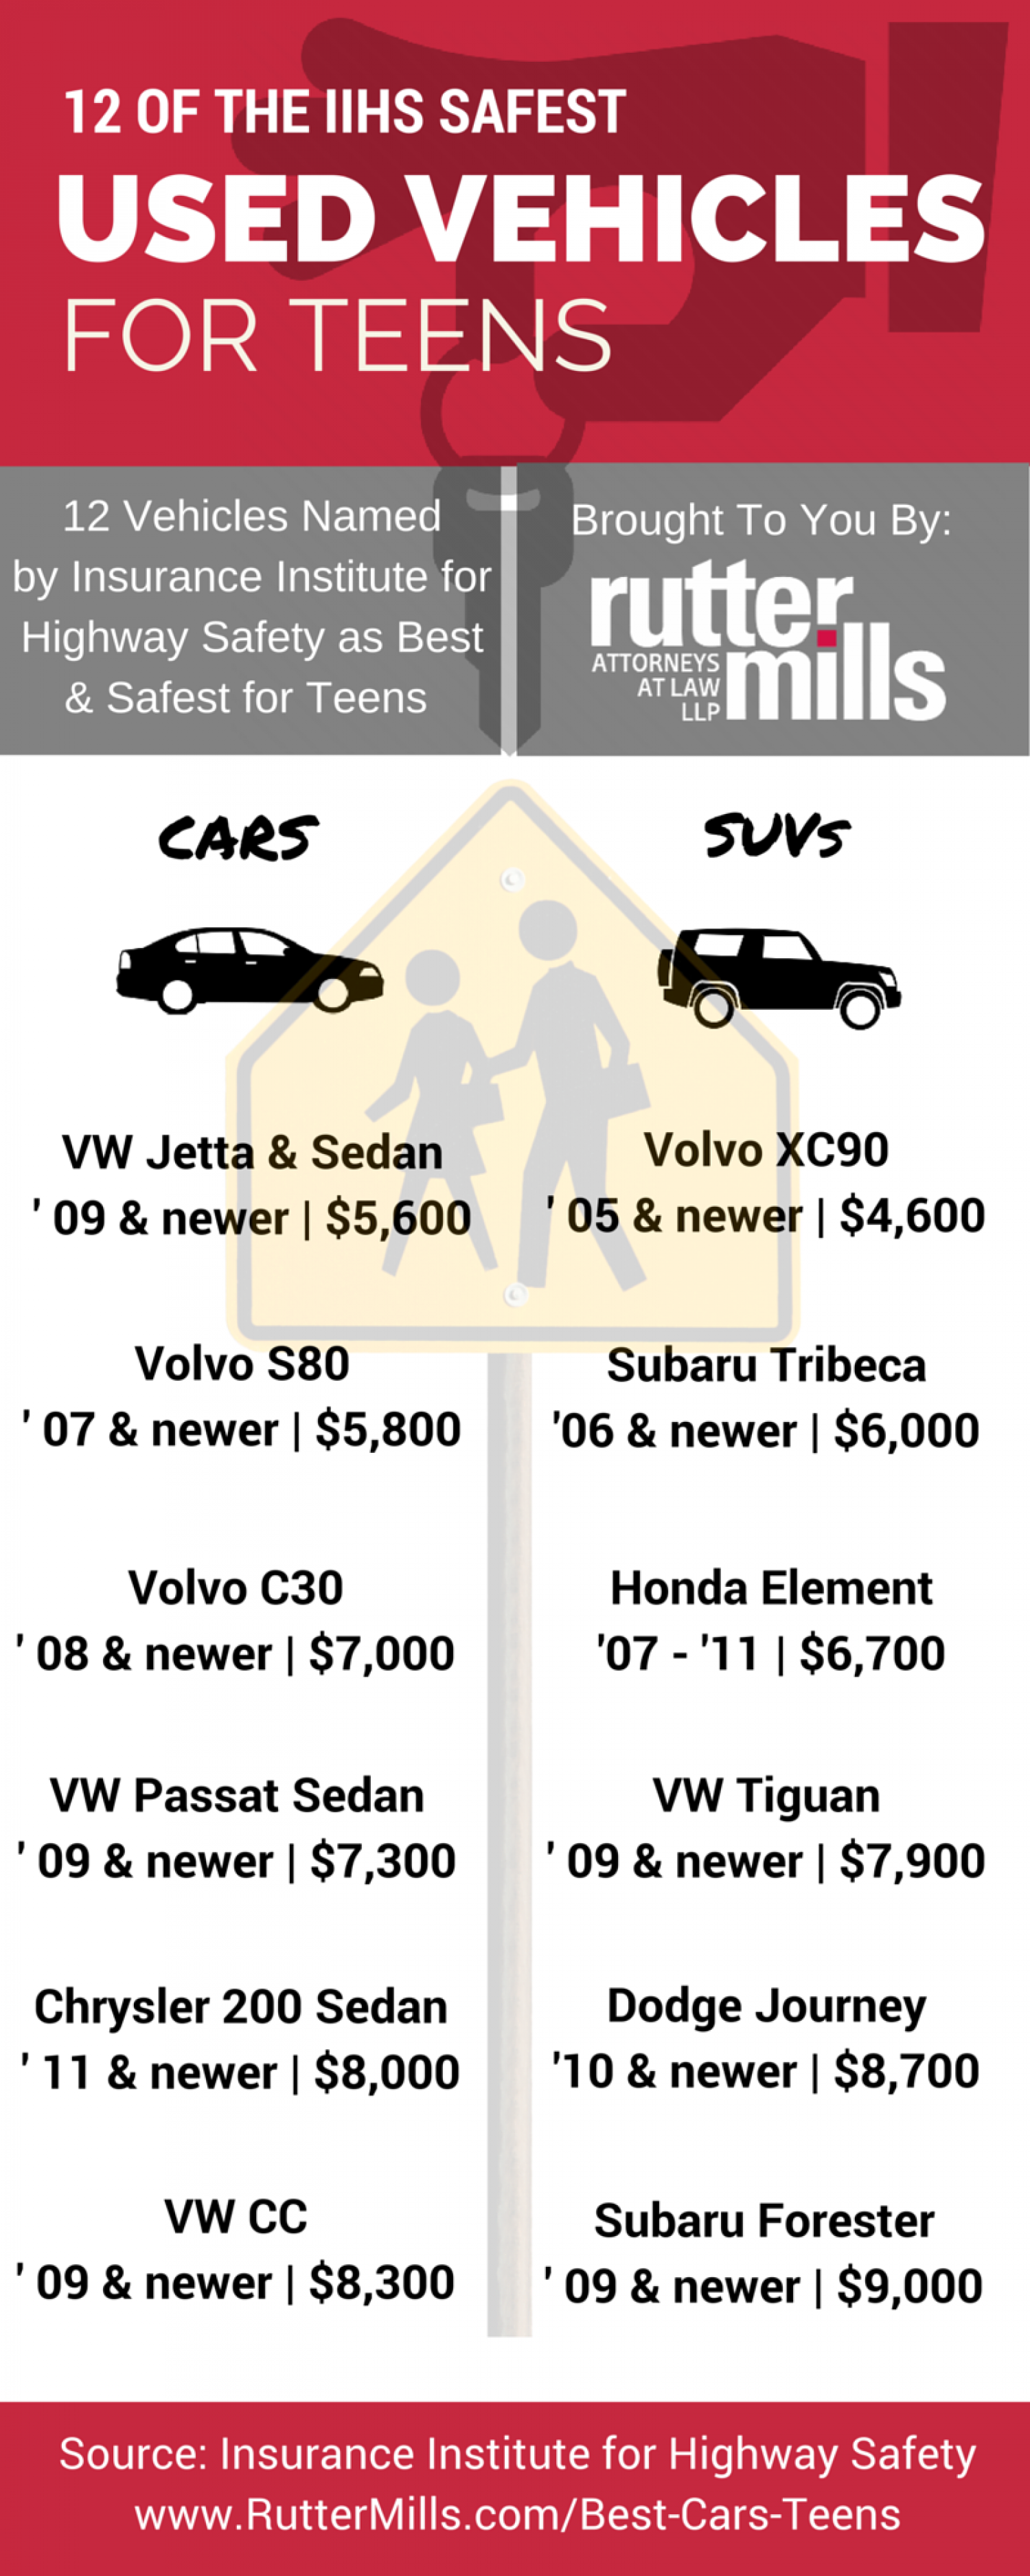 12 of the IIHS Safest Used Vehicles for Teens Infographic